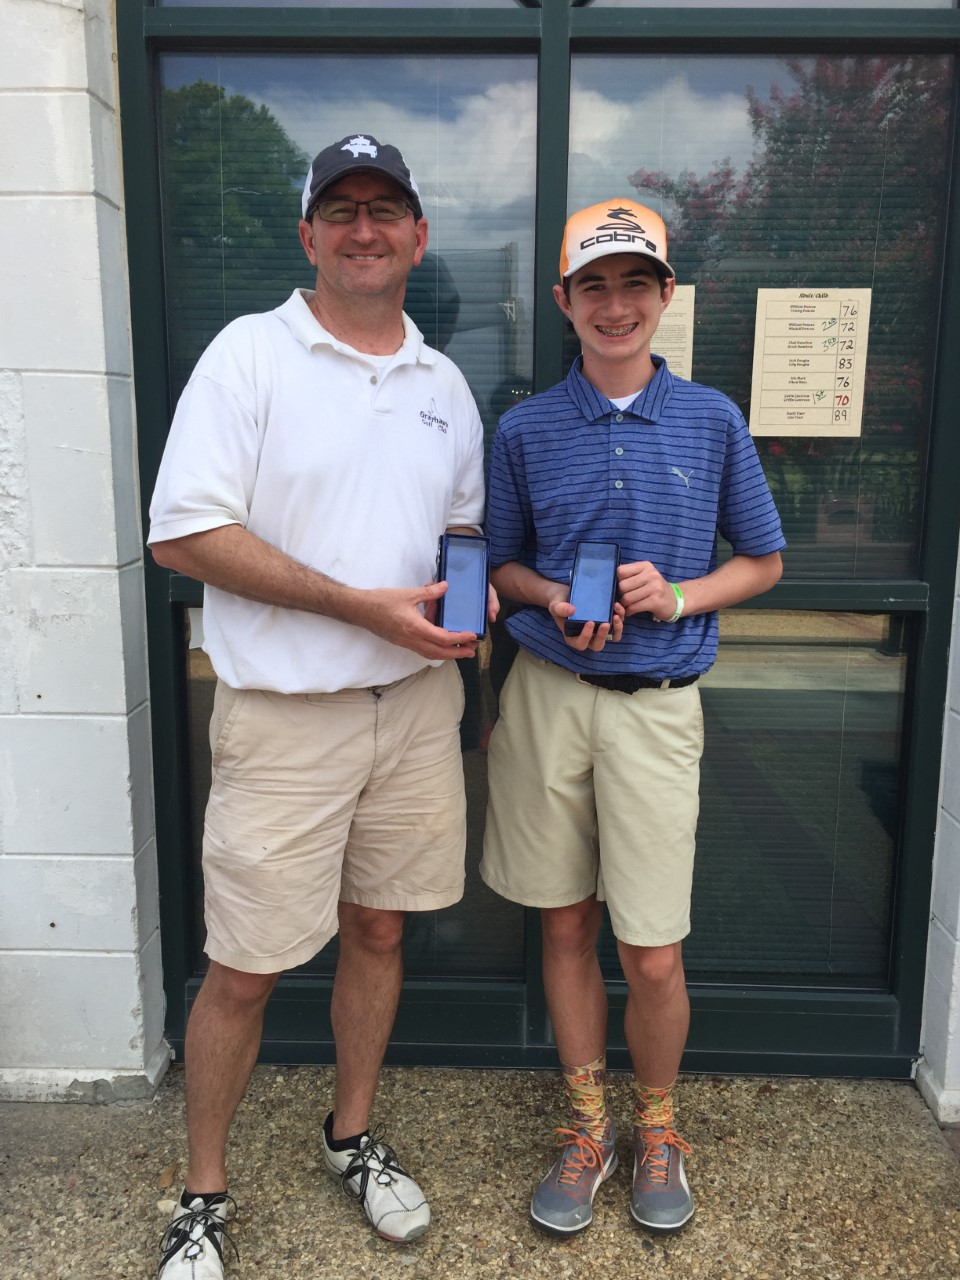 2019 Parent/Child 13-17 – Tournament Results